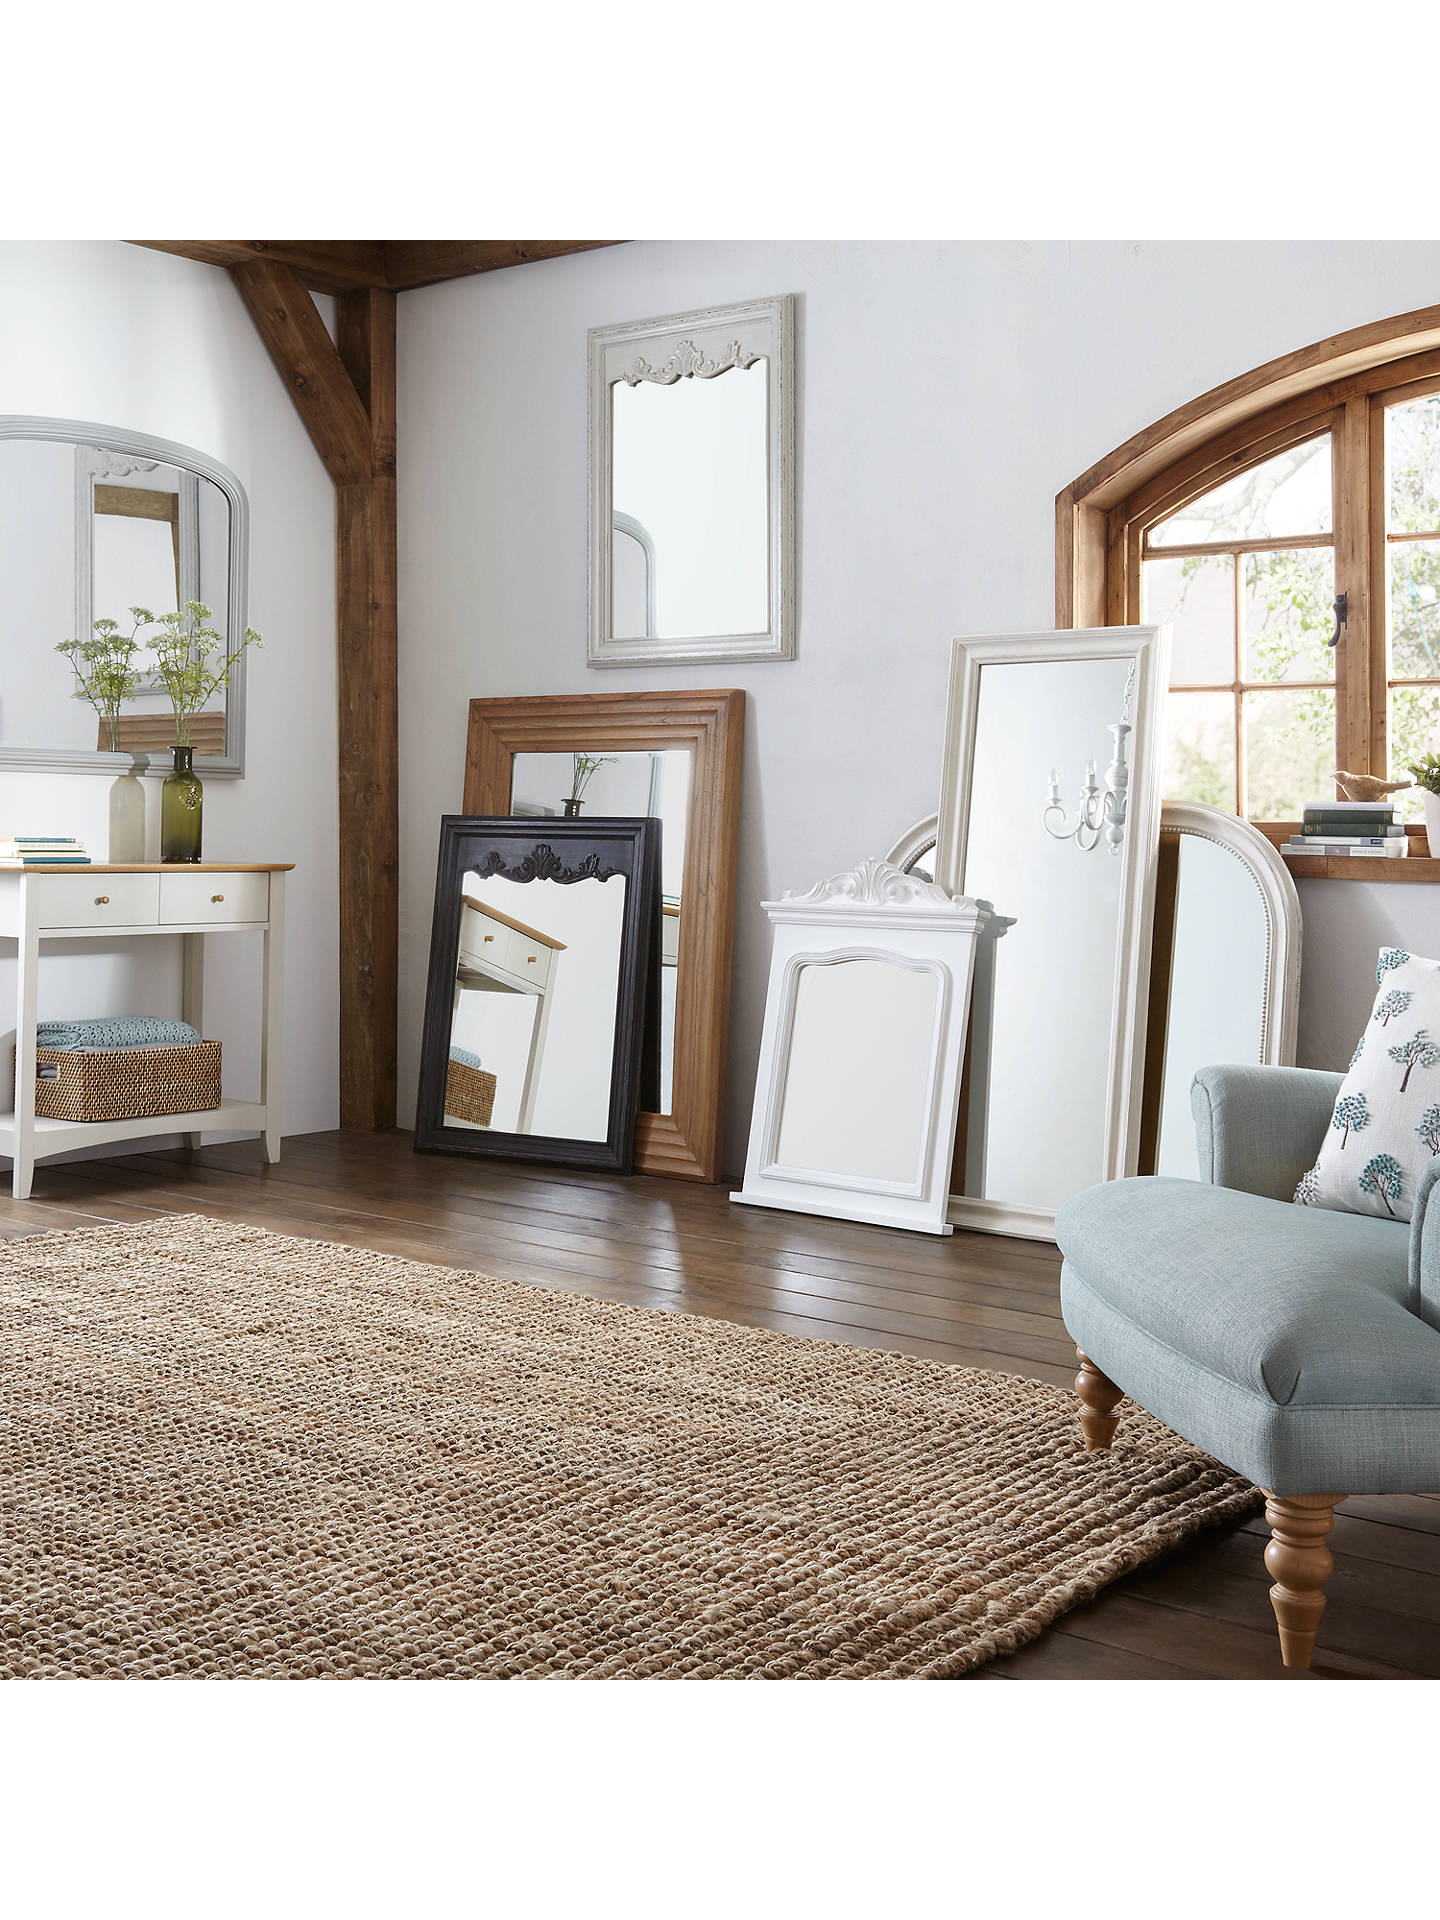 BuyJohn Lewis & Partners Distressed Full Length Mirror, 132 x 52cm, Cream Online at johnlewis.com